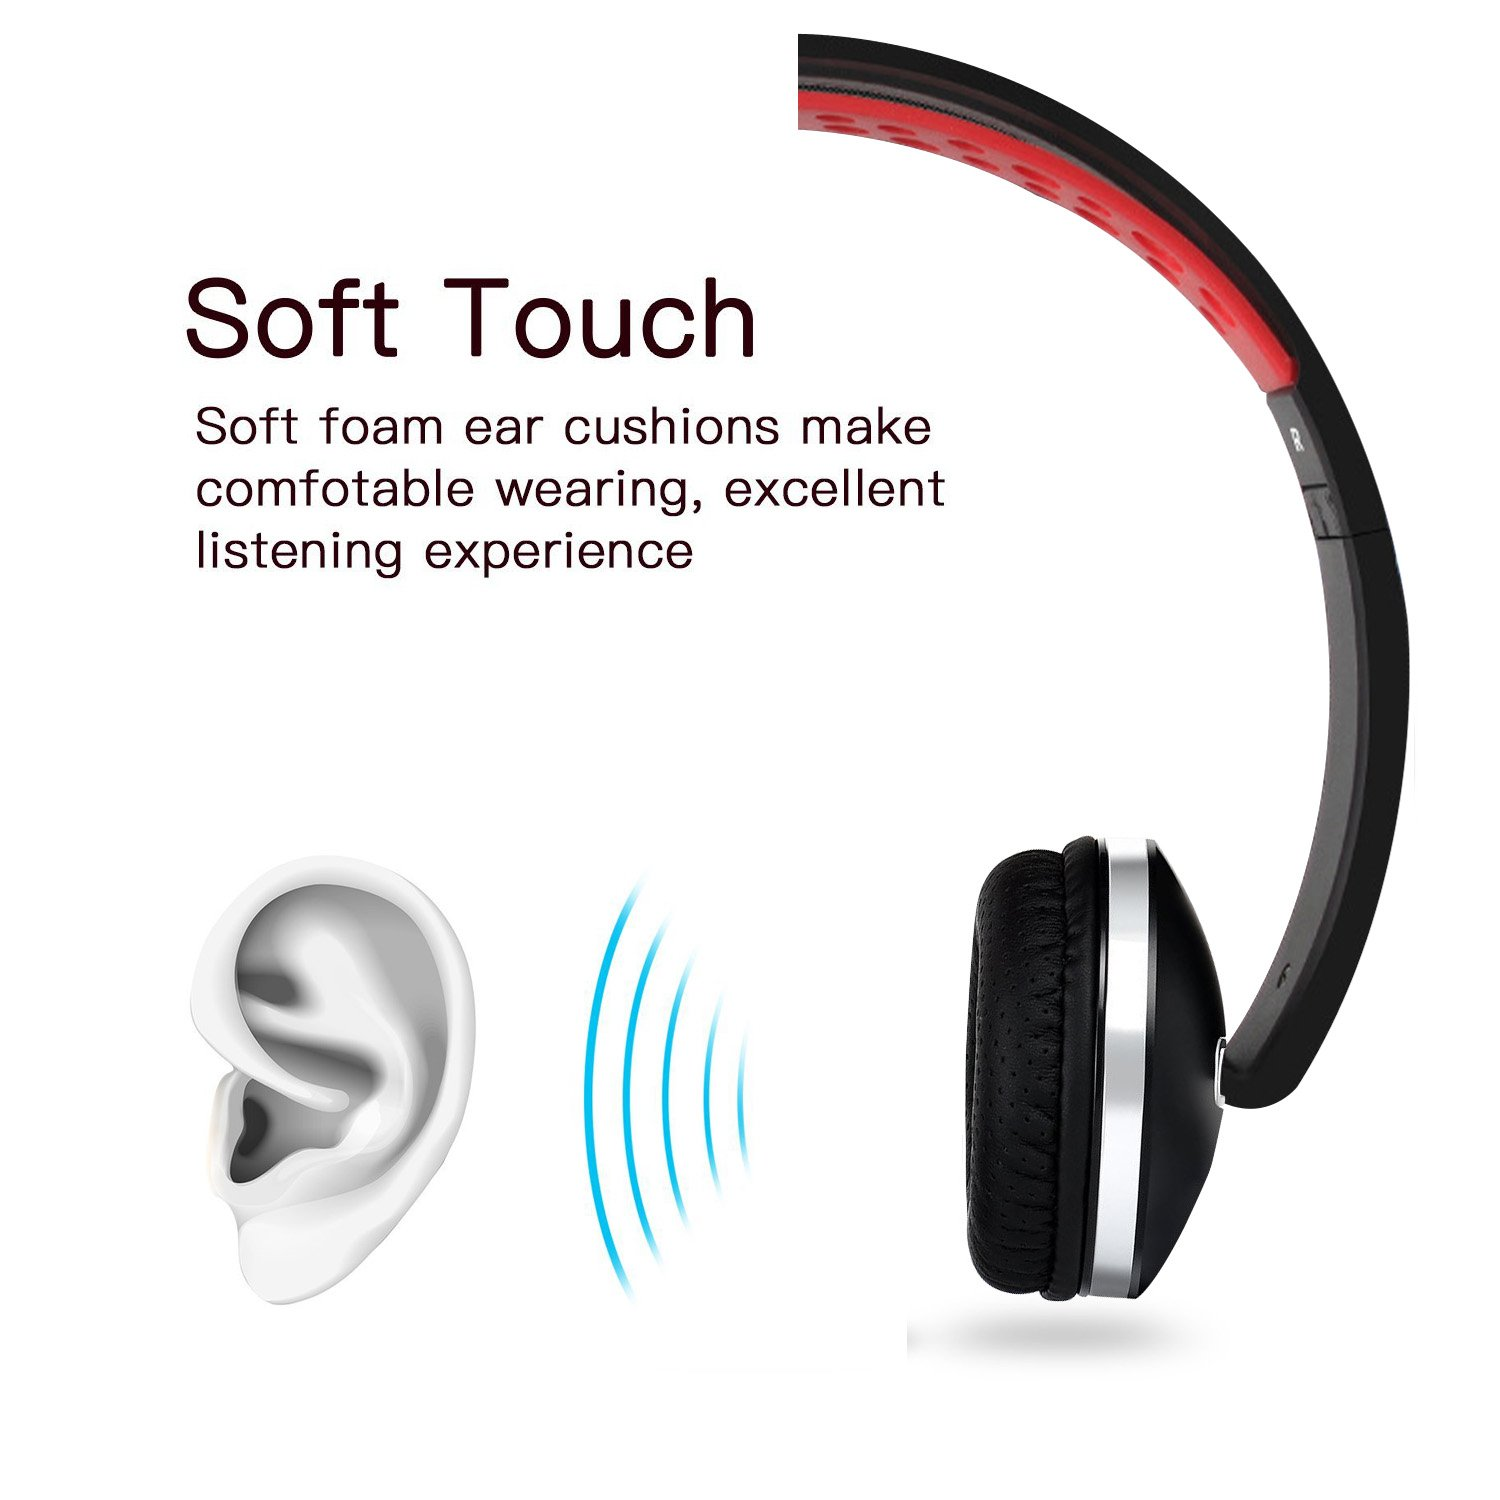 Over Ear Headphones, Lightweight Foldable Headphones with Microphone Stereo Bass Adjustable PC Headset Wired Flat Cord Headphone with Volume Control for Sport Workout Gym for Smartphones Laptop by Fujack (Image #6)